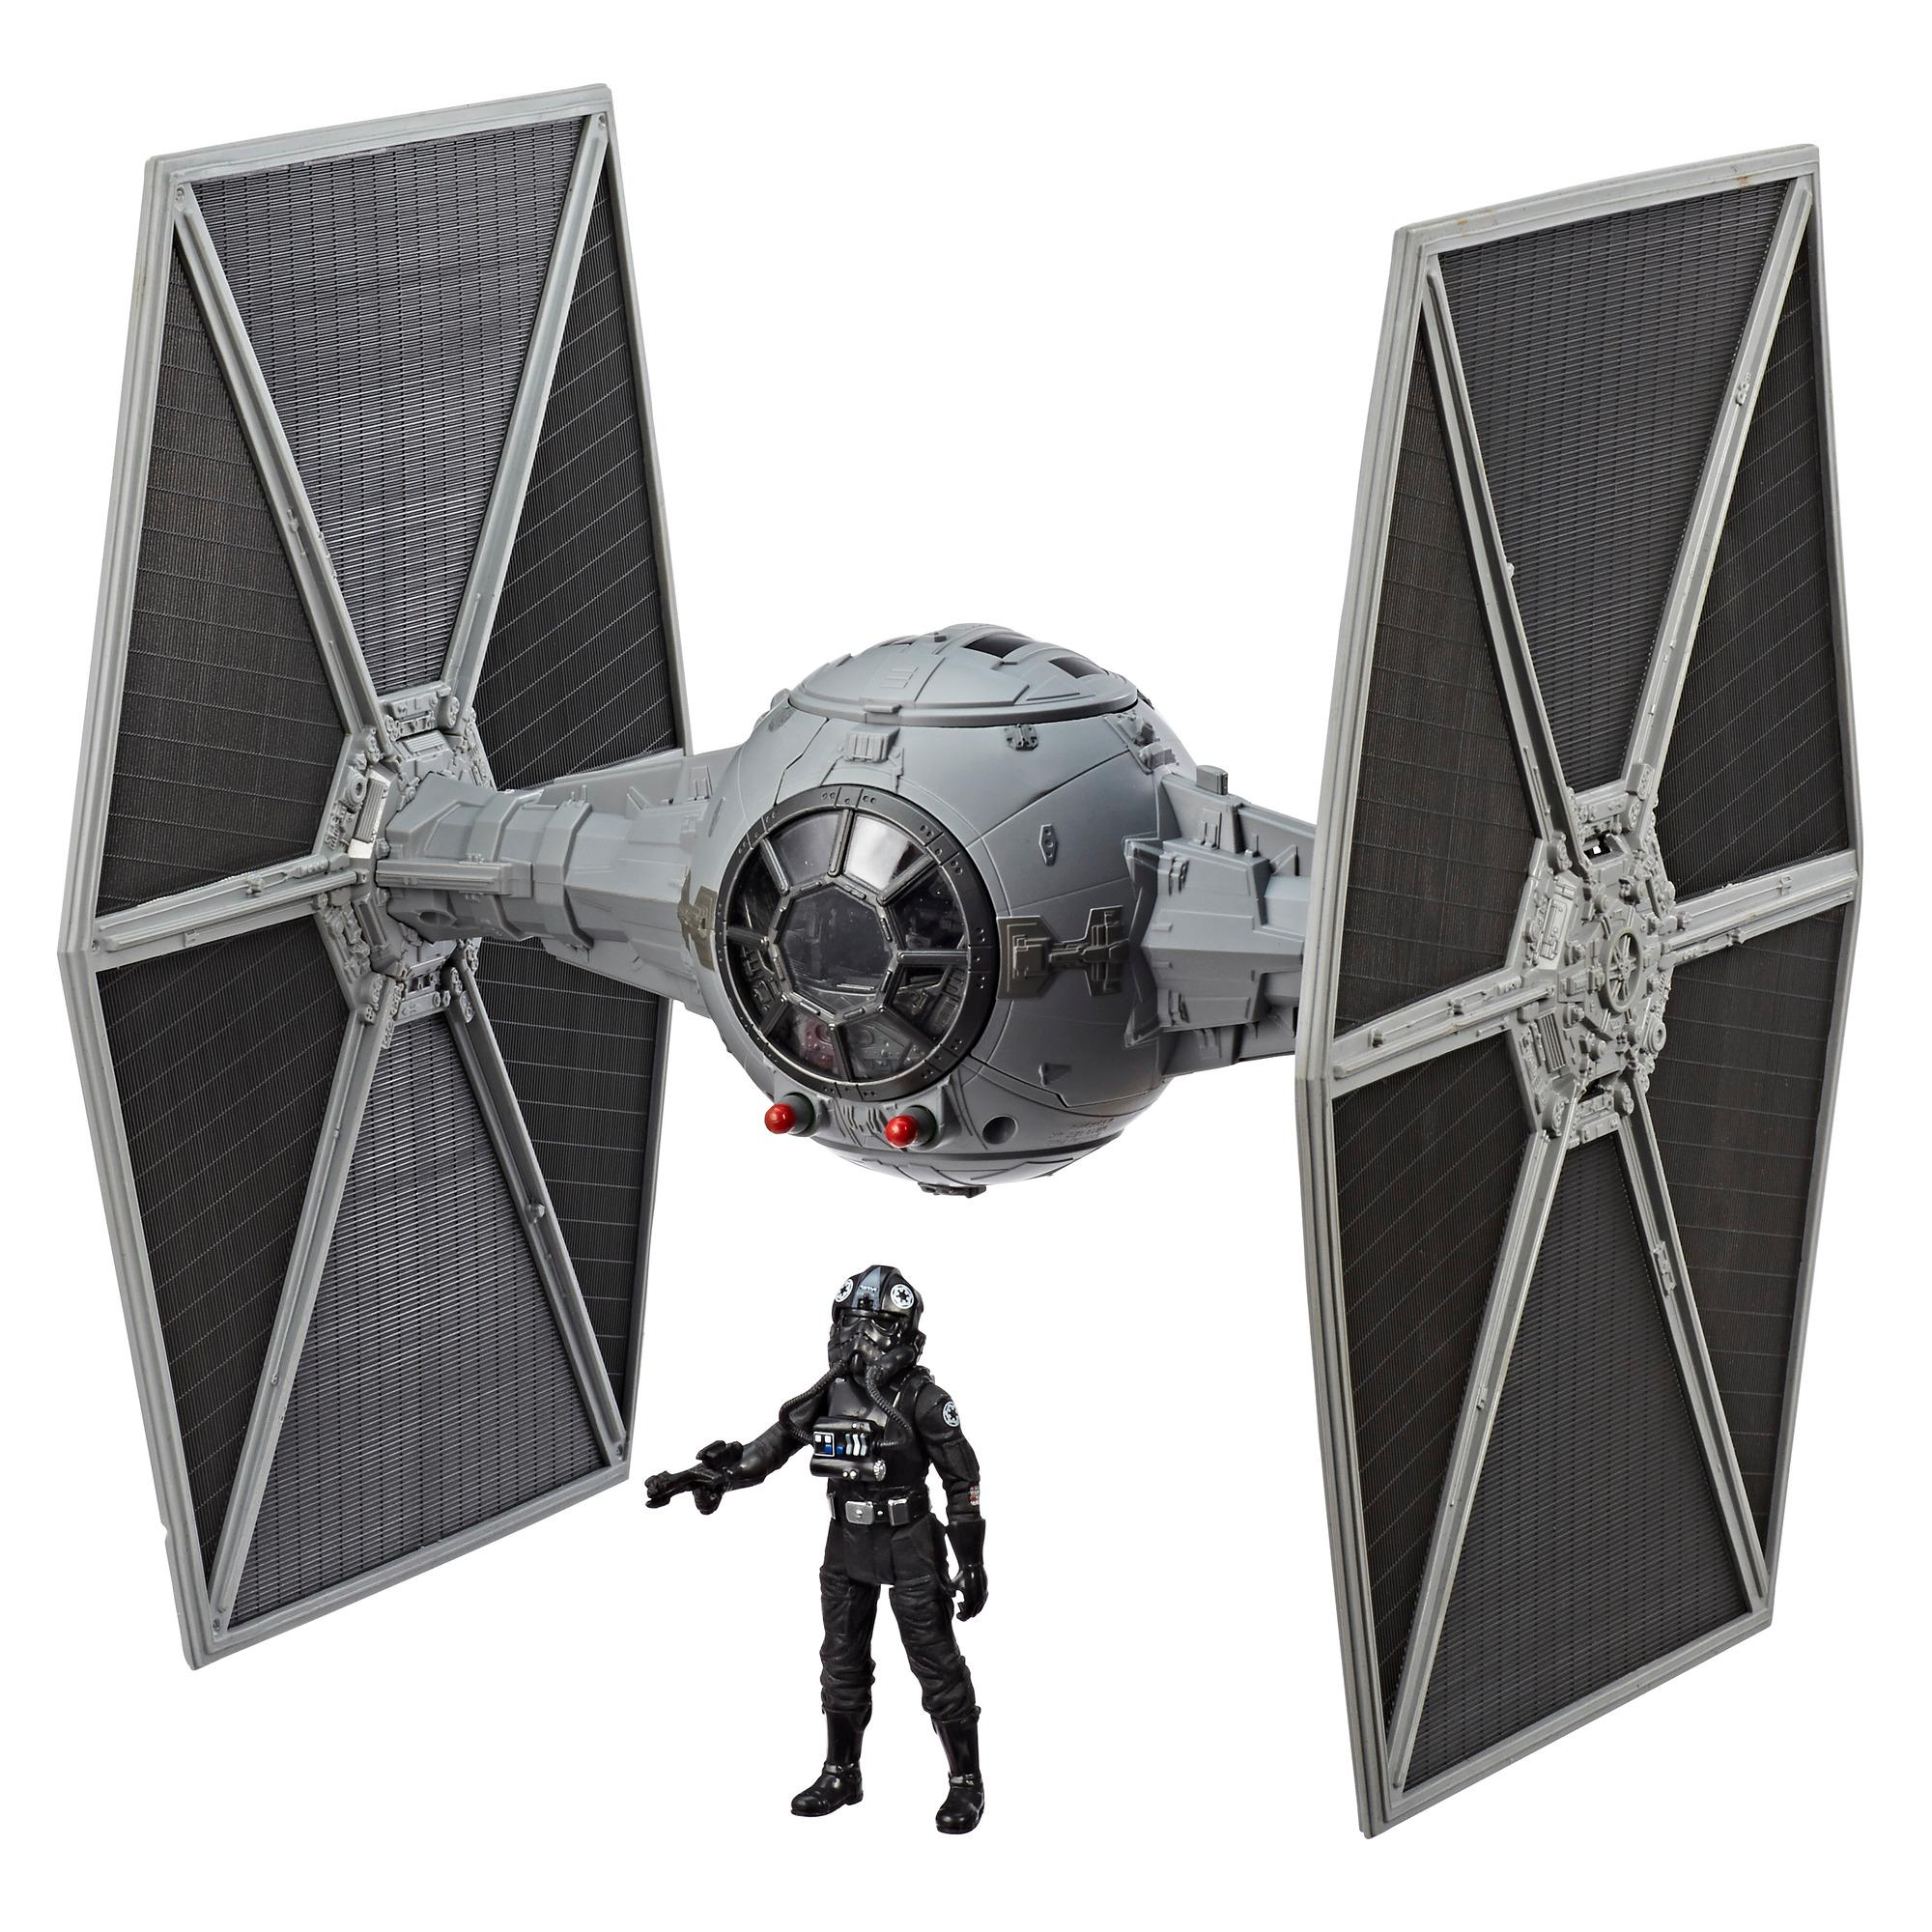 Star Wars Force Link 2.0 TIE Fighter and TIE Fighter Pilot Figure